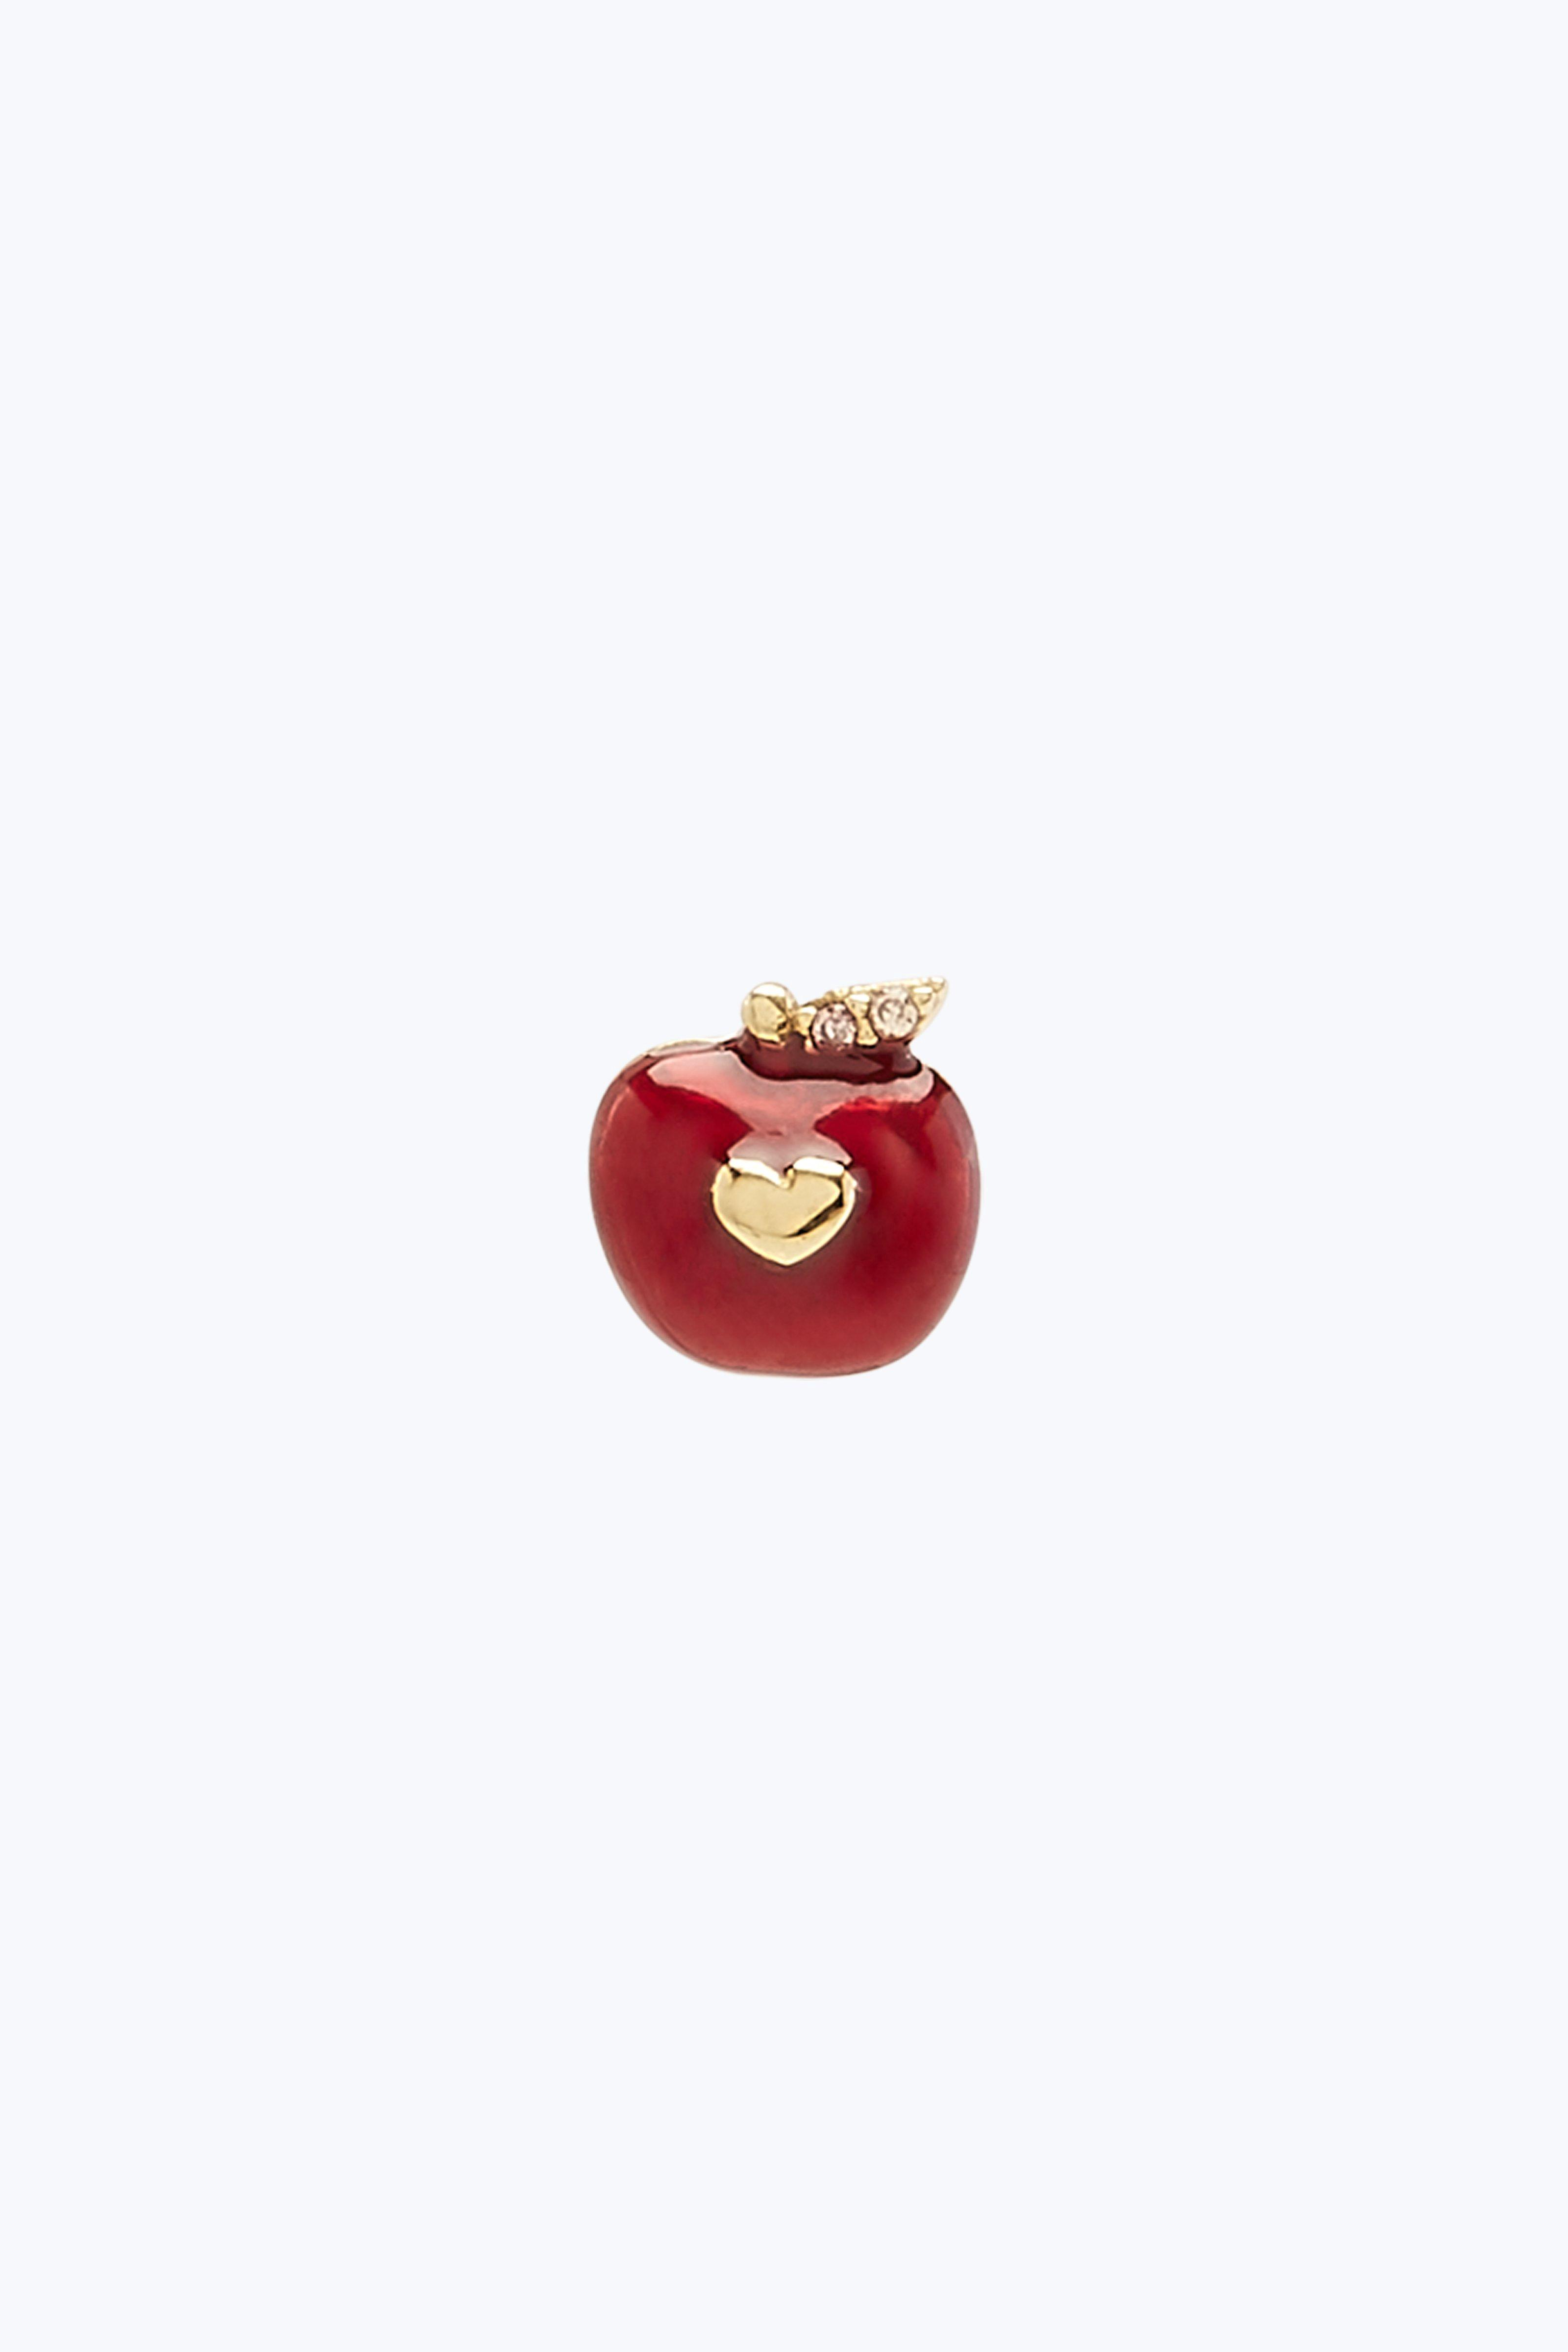 7726d4a26 Marc Jacobs Red Single Apple Stud Earring | ModeSens